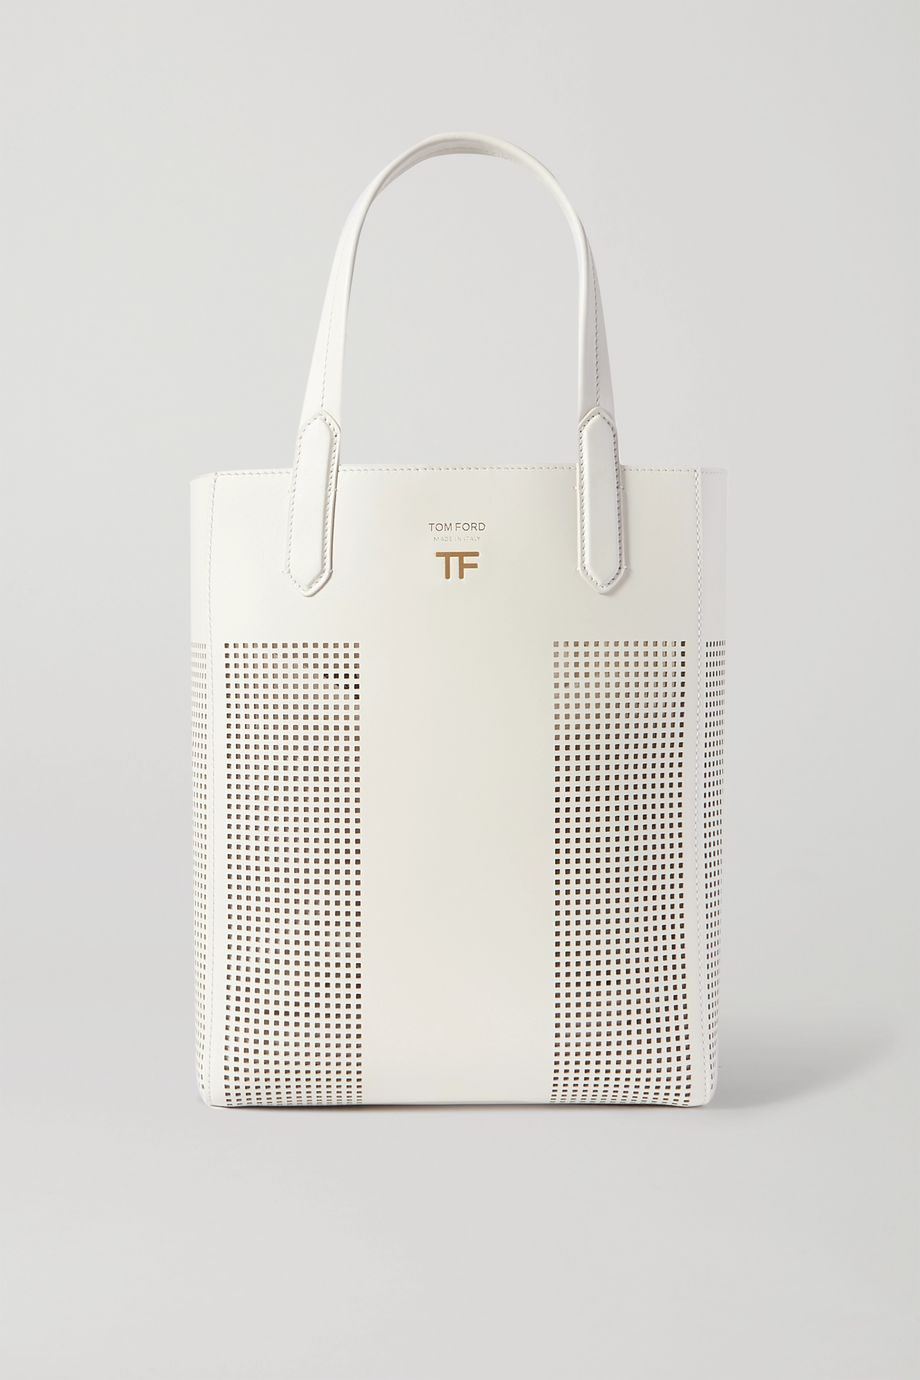 TOM FORD T small laser-cut leather tote